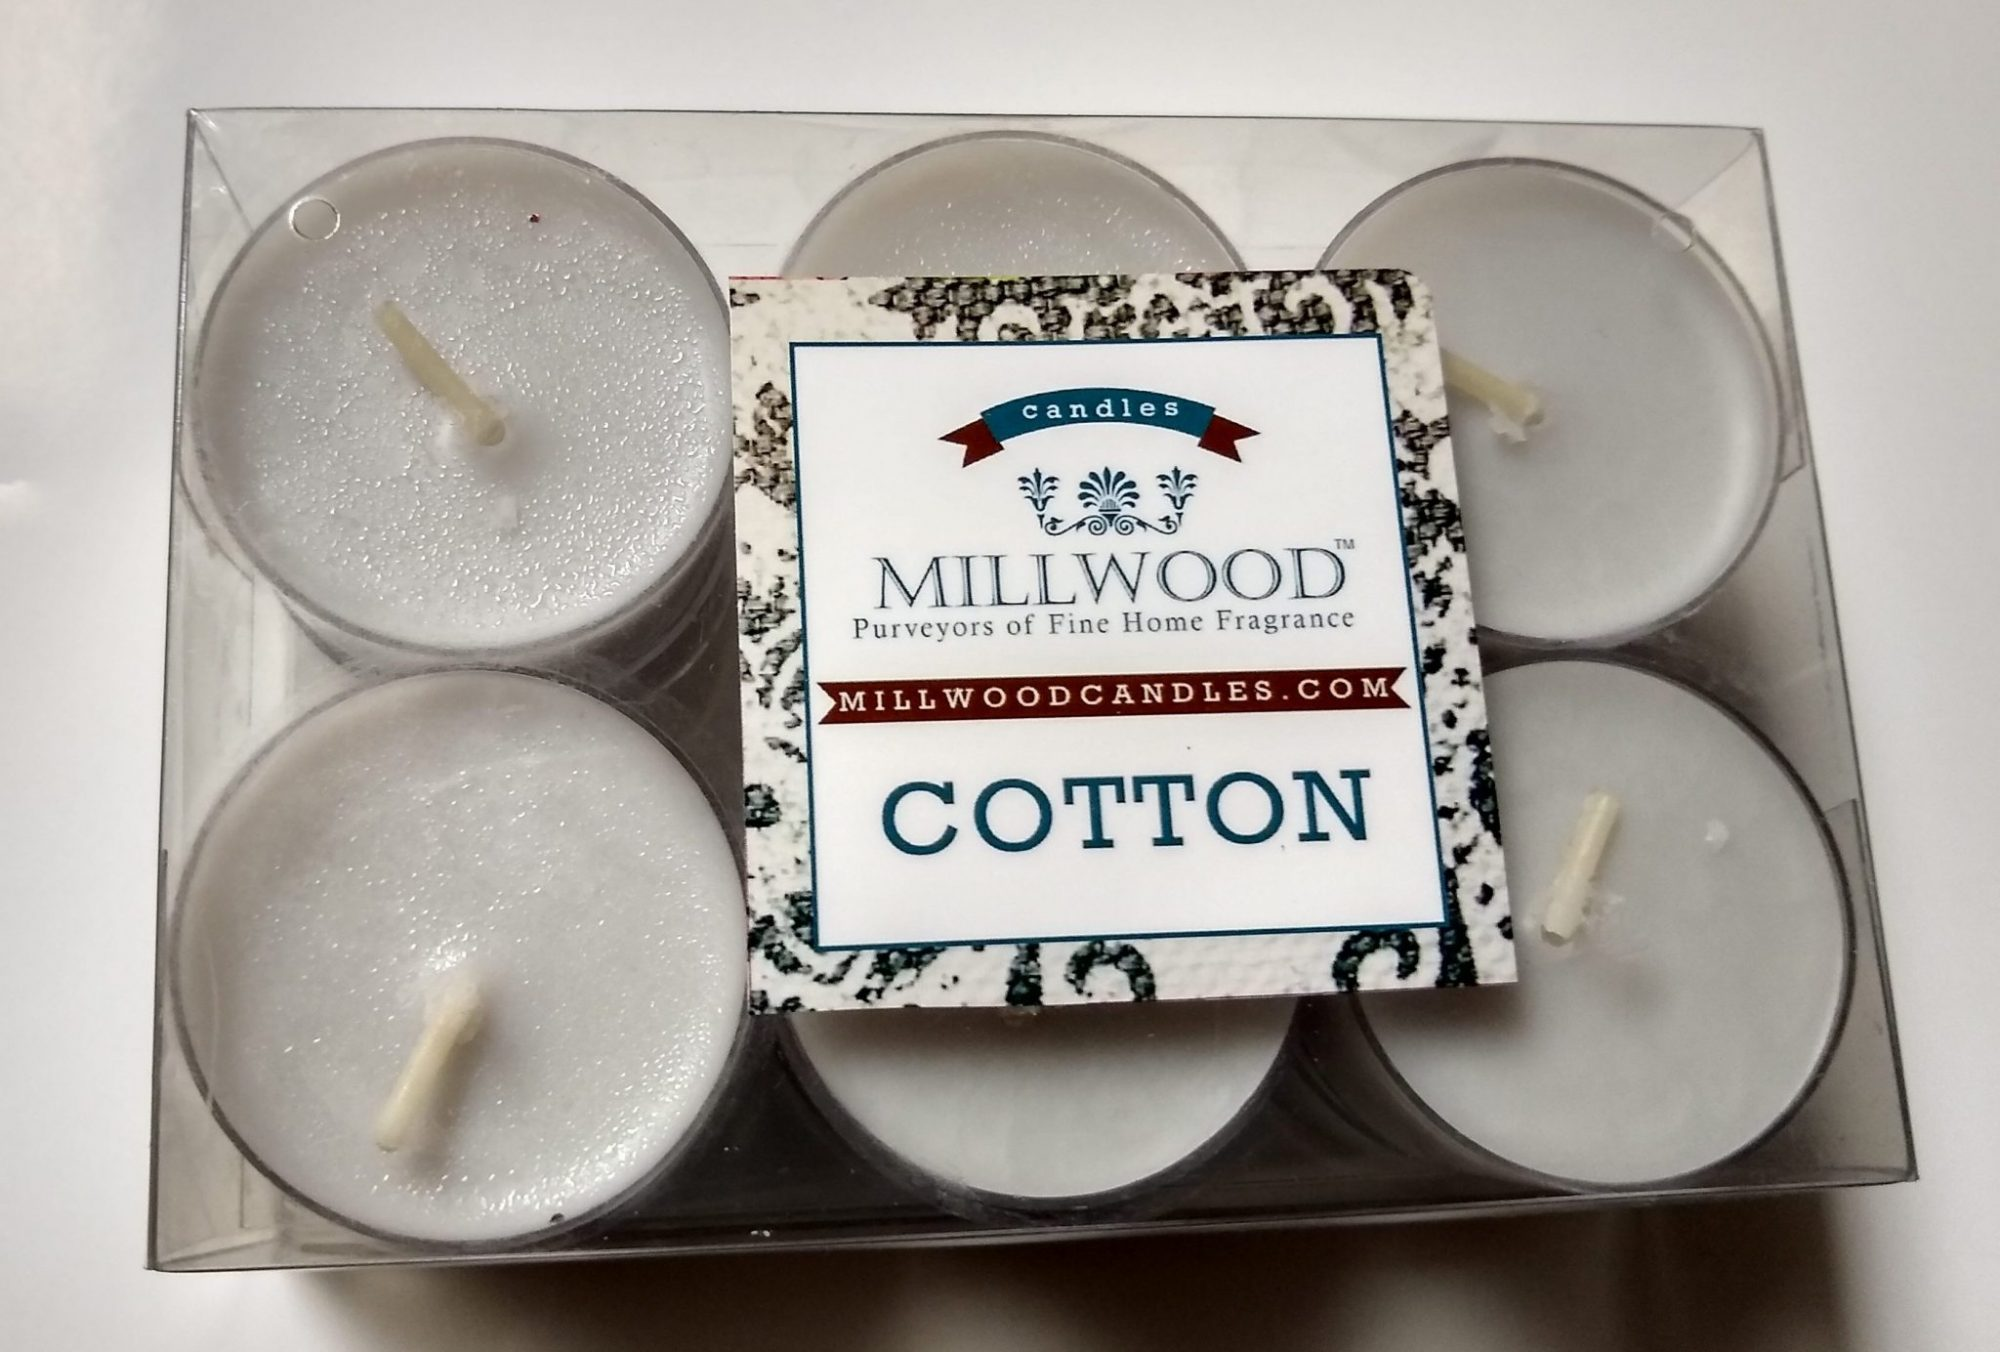 12 pack Millwood Candles Cotton tealights